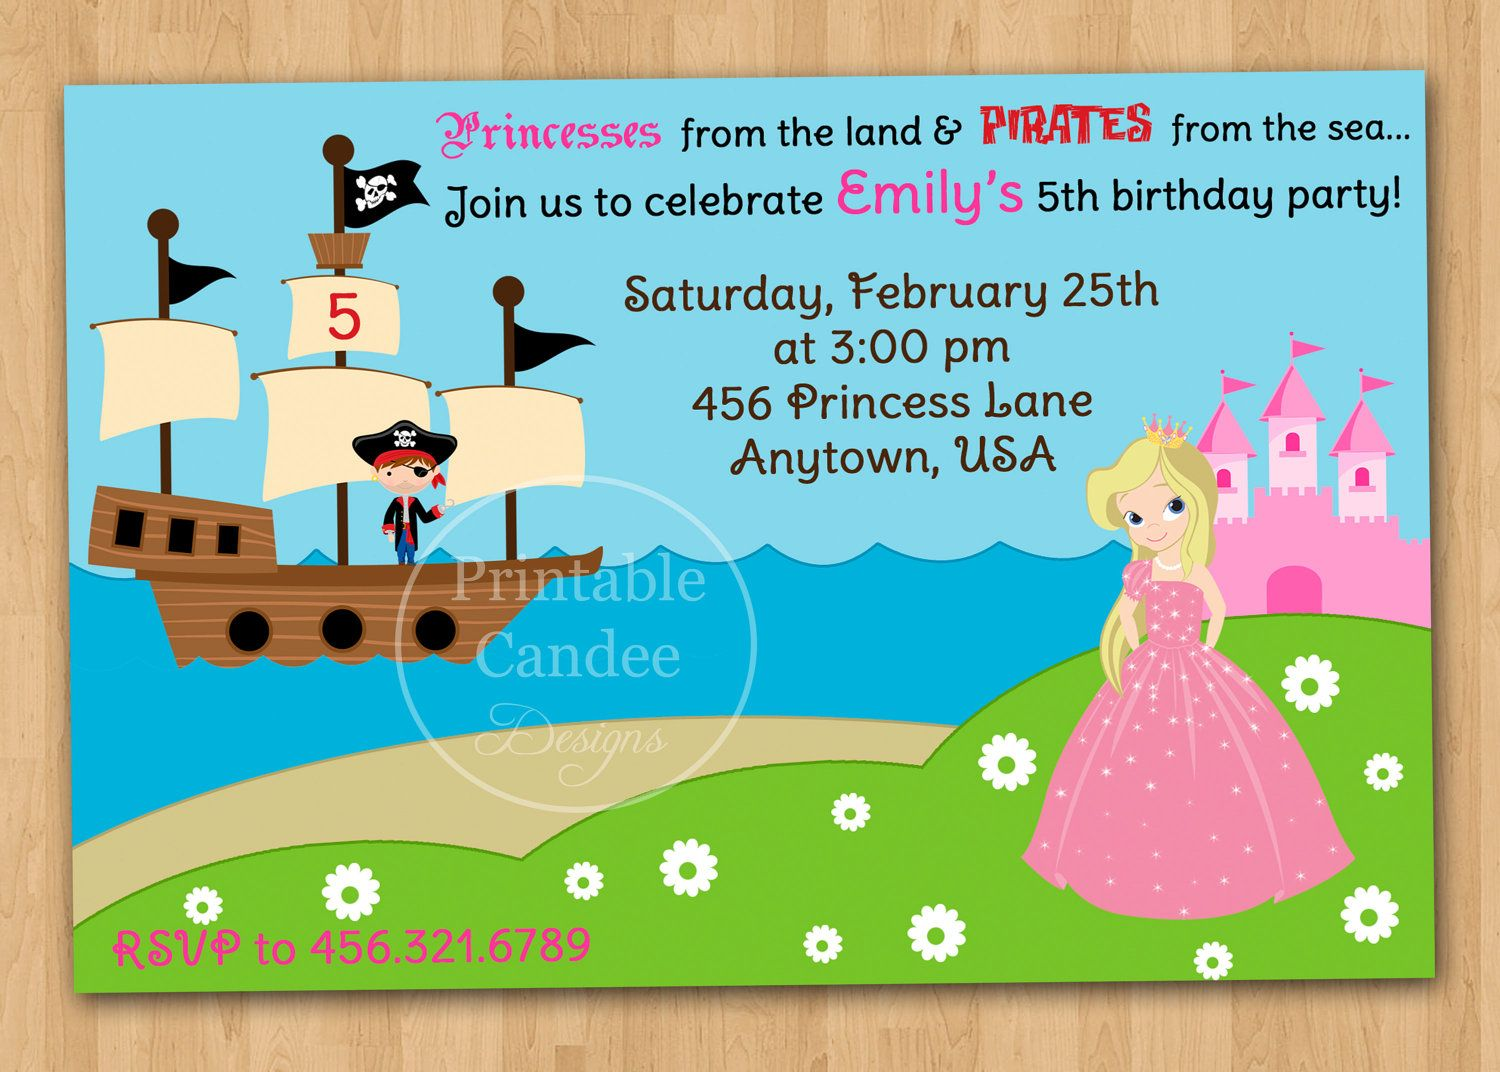 Pirate And Princess Party Invitations Template Free – Free Pirate Party Invitations